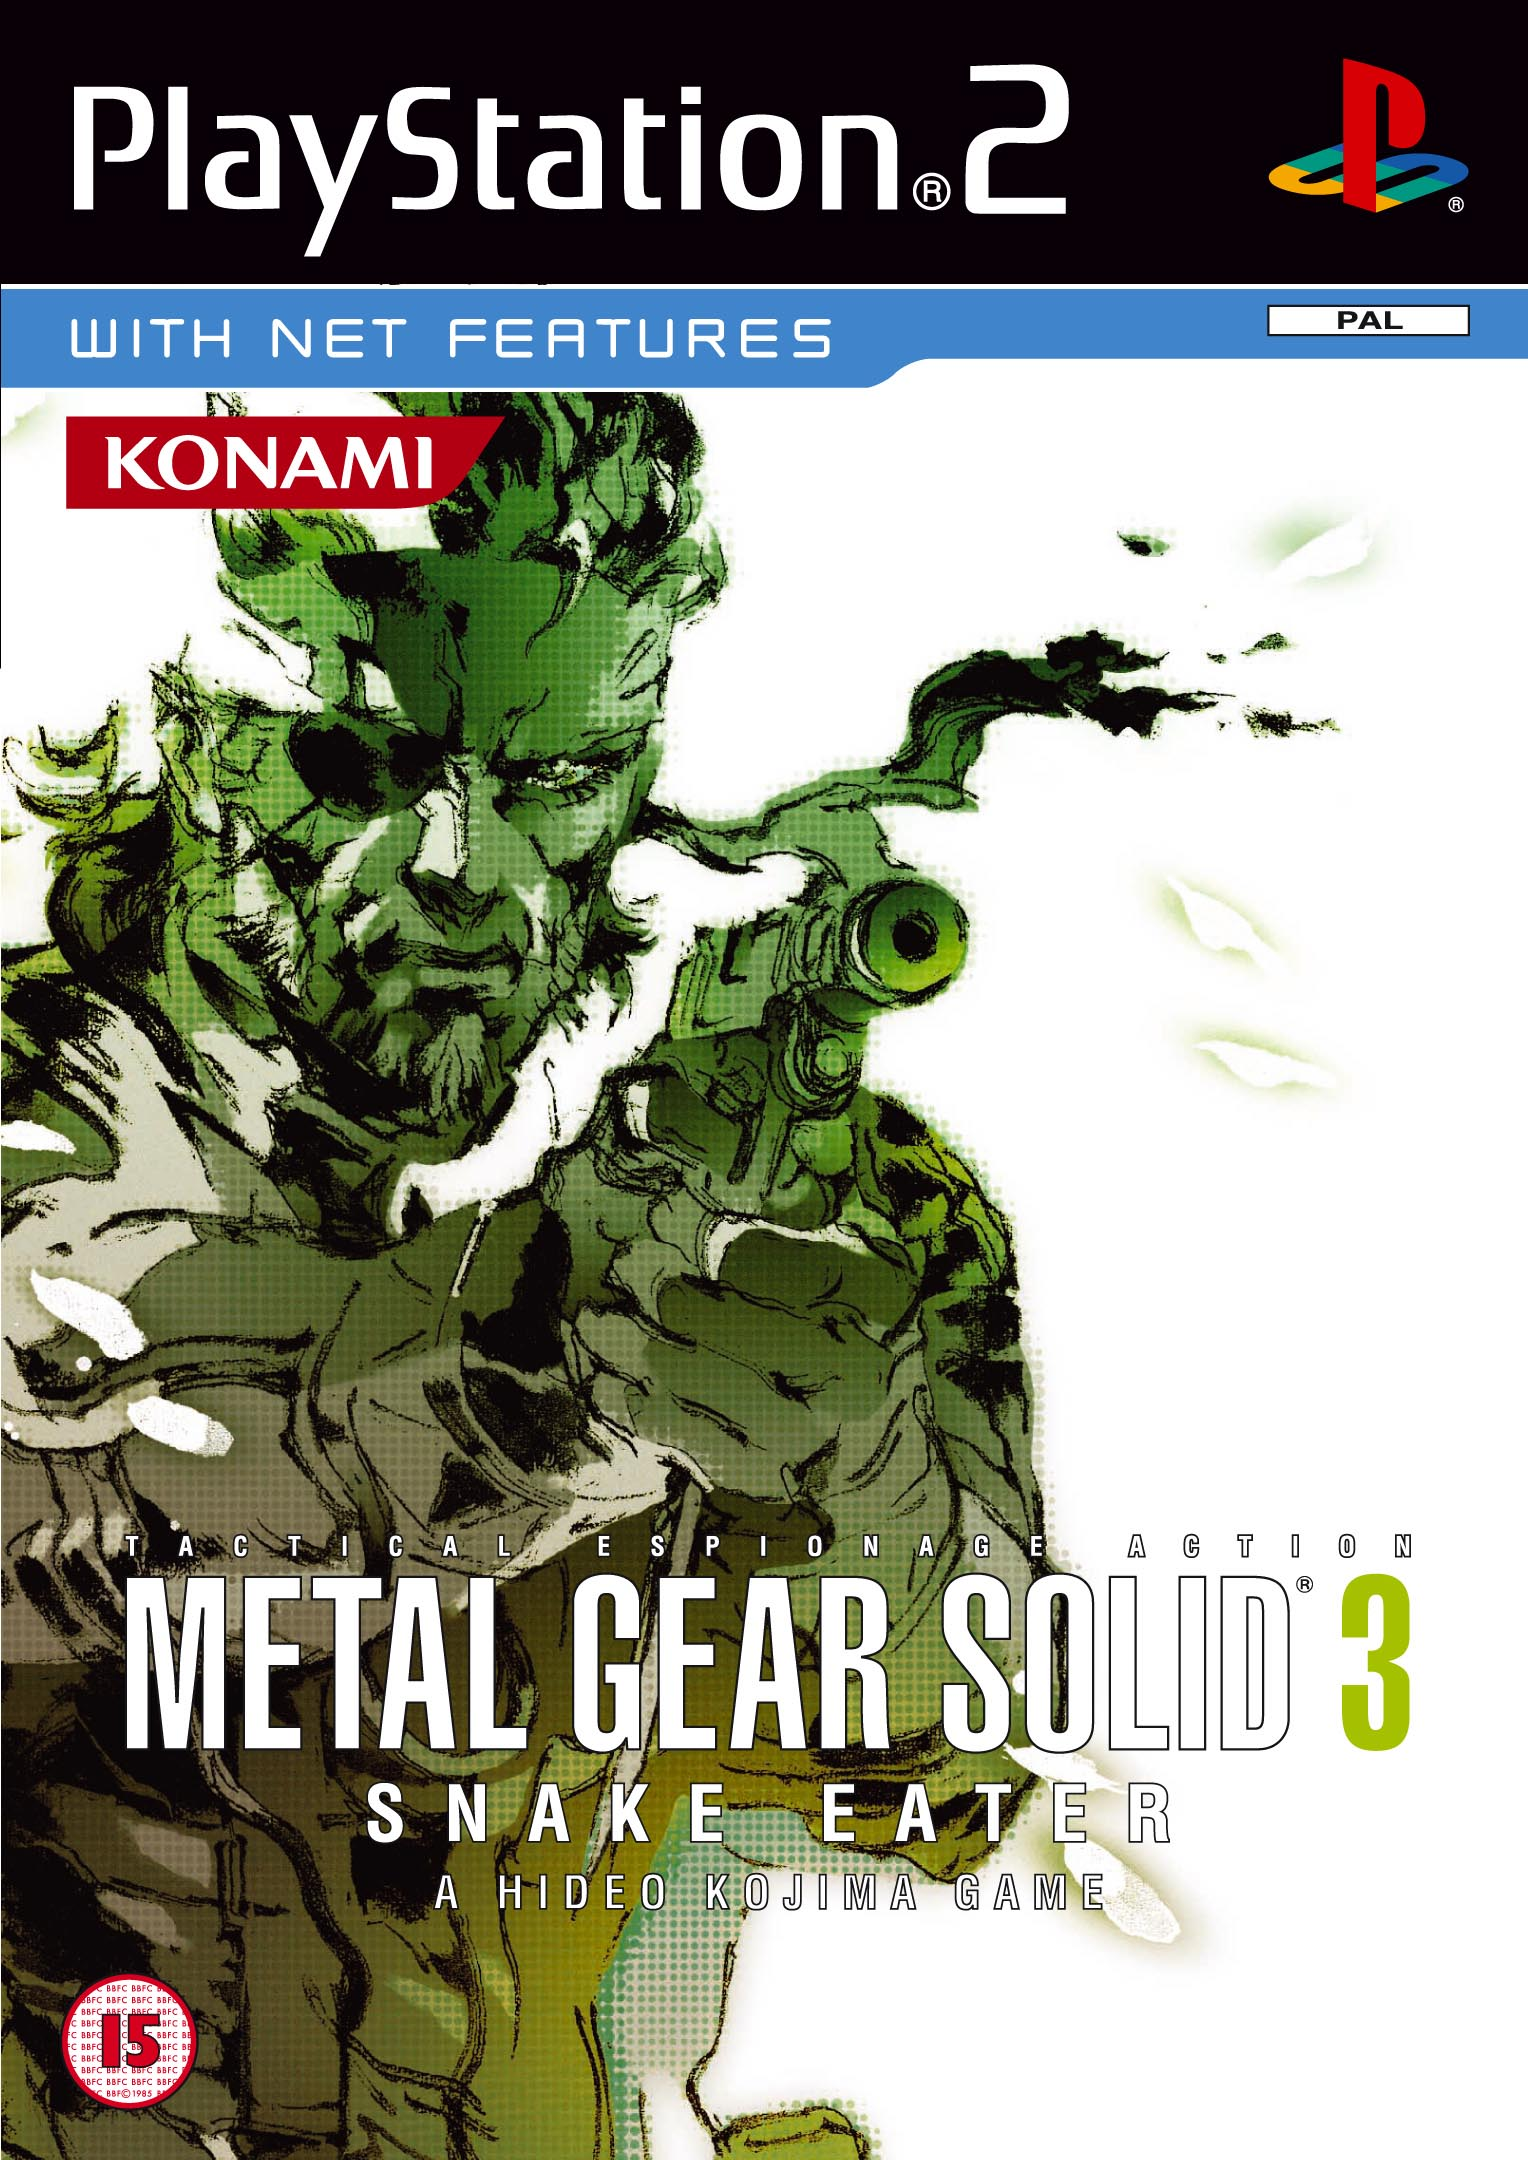 metal-gear-solid-3-snake-eater-ps2-cover-front-eu-49290.jpg